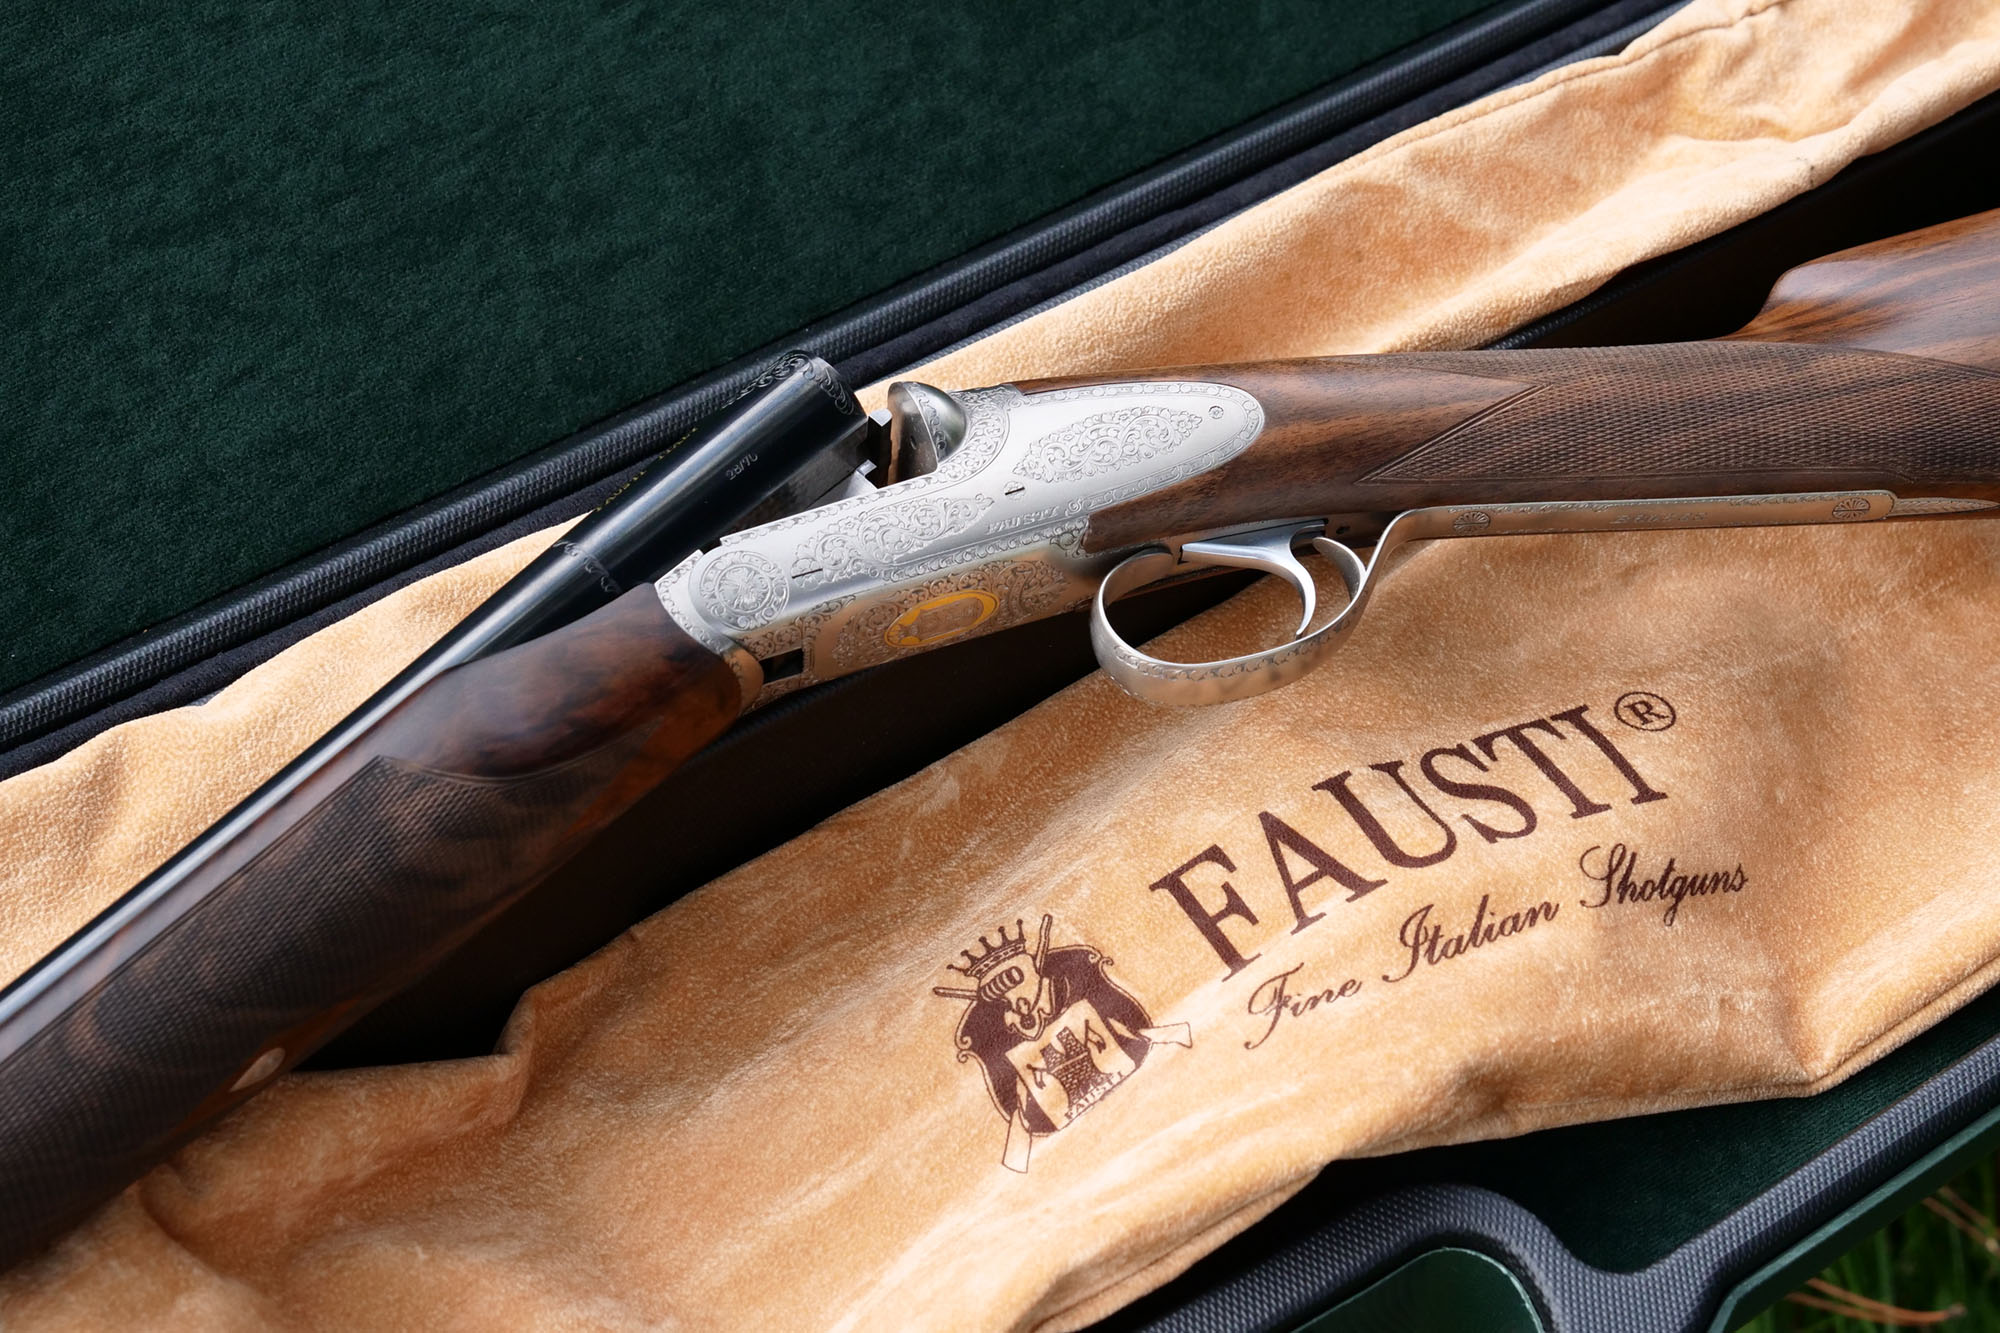 Fausti DEA Luxury side-by-side 28 ga with Silver finish.